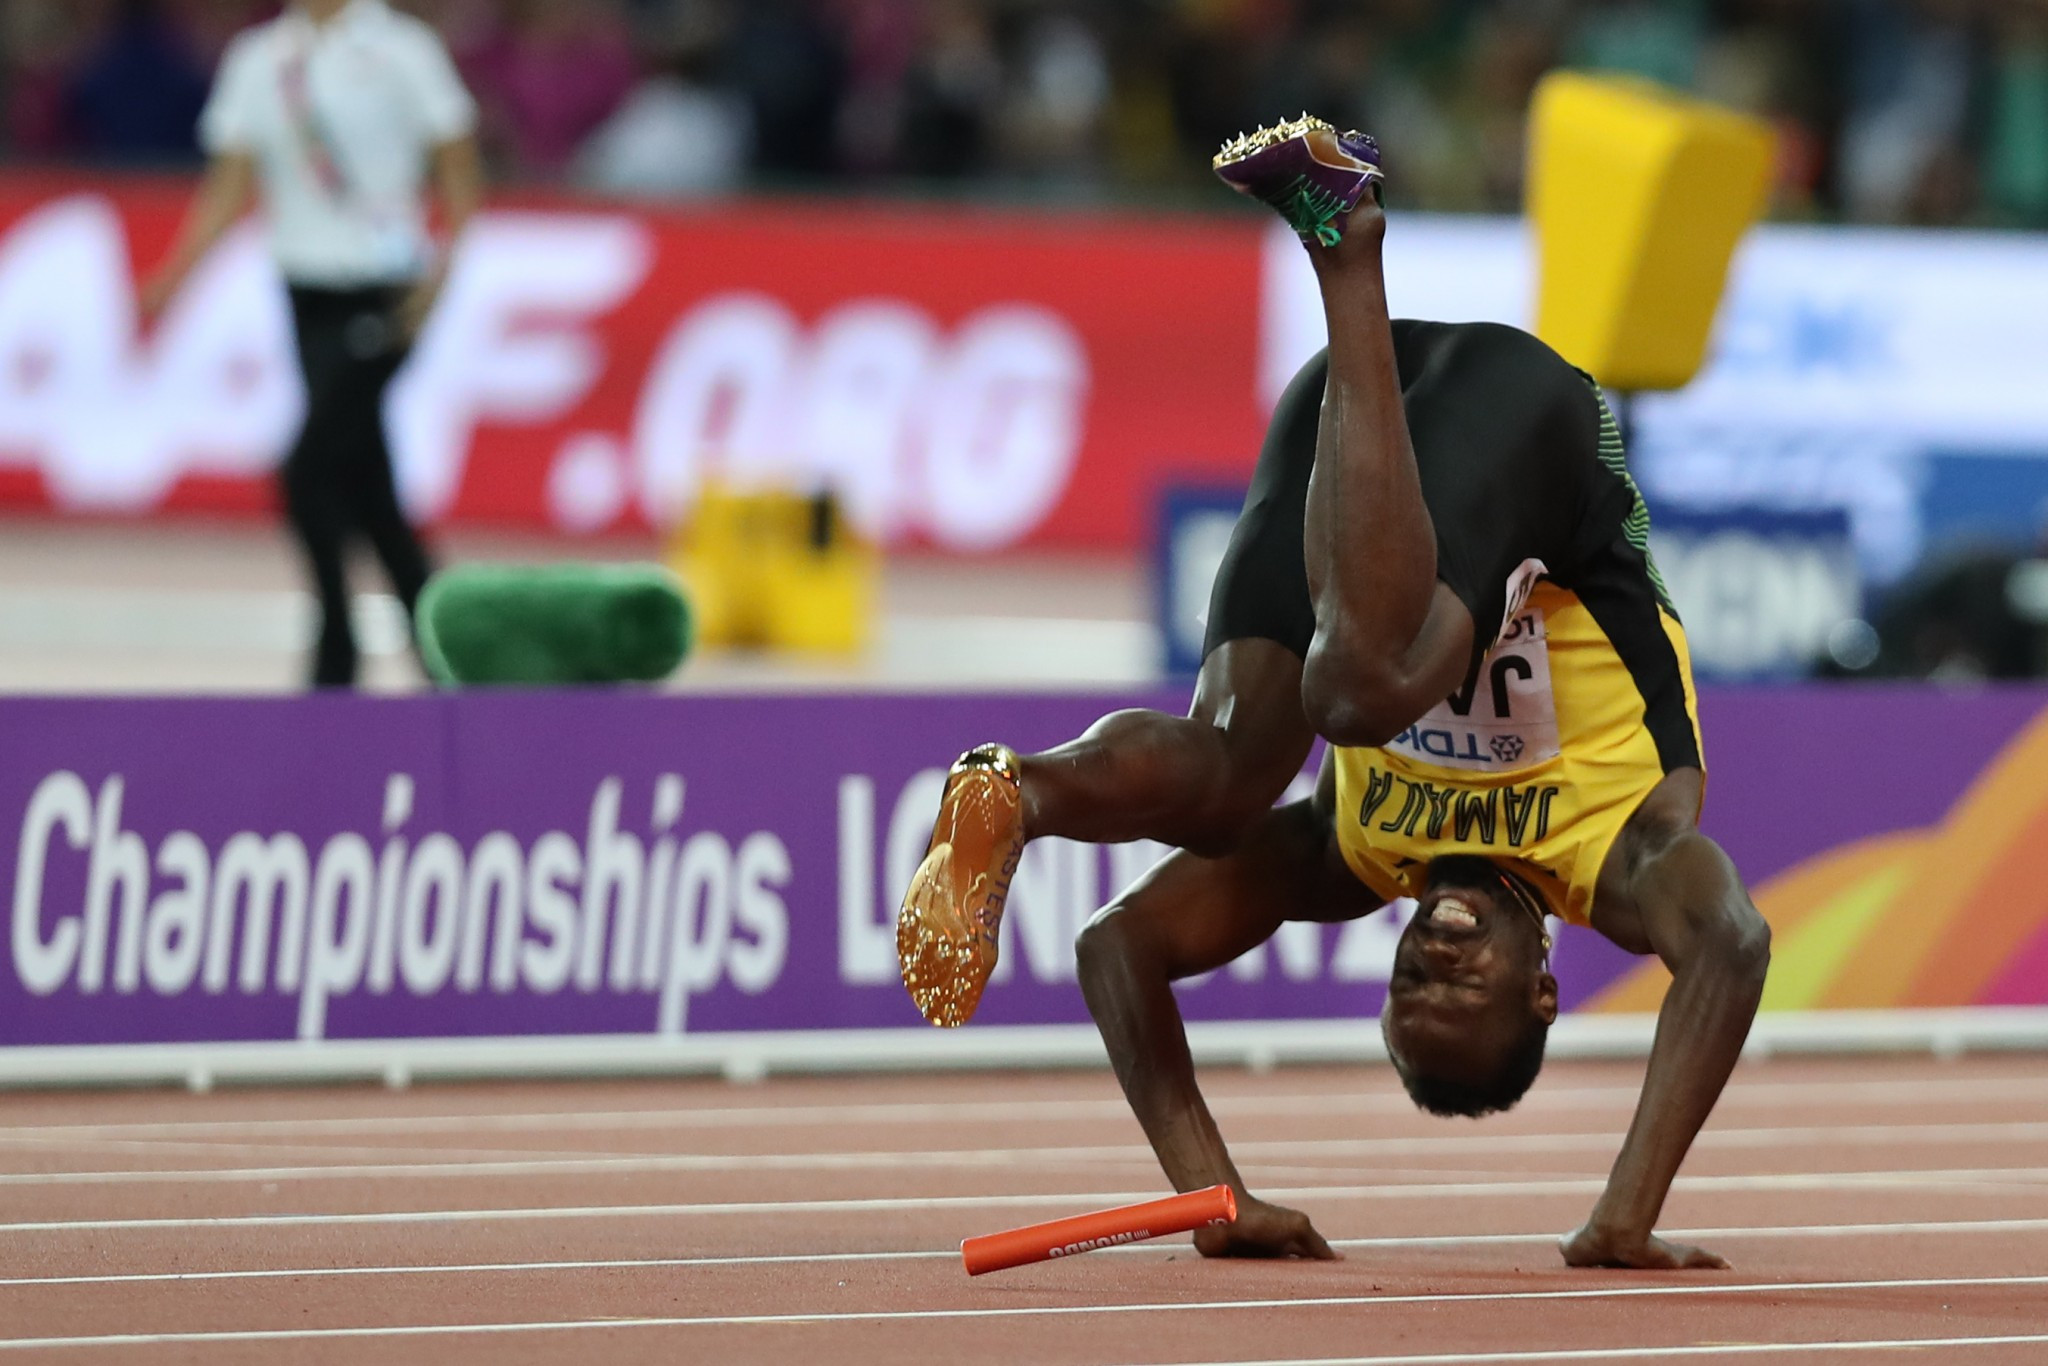 Usain Bolt's fall provided huge drama in the men's 4x100m relay race ©Getty Images